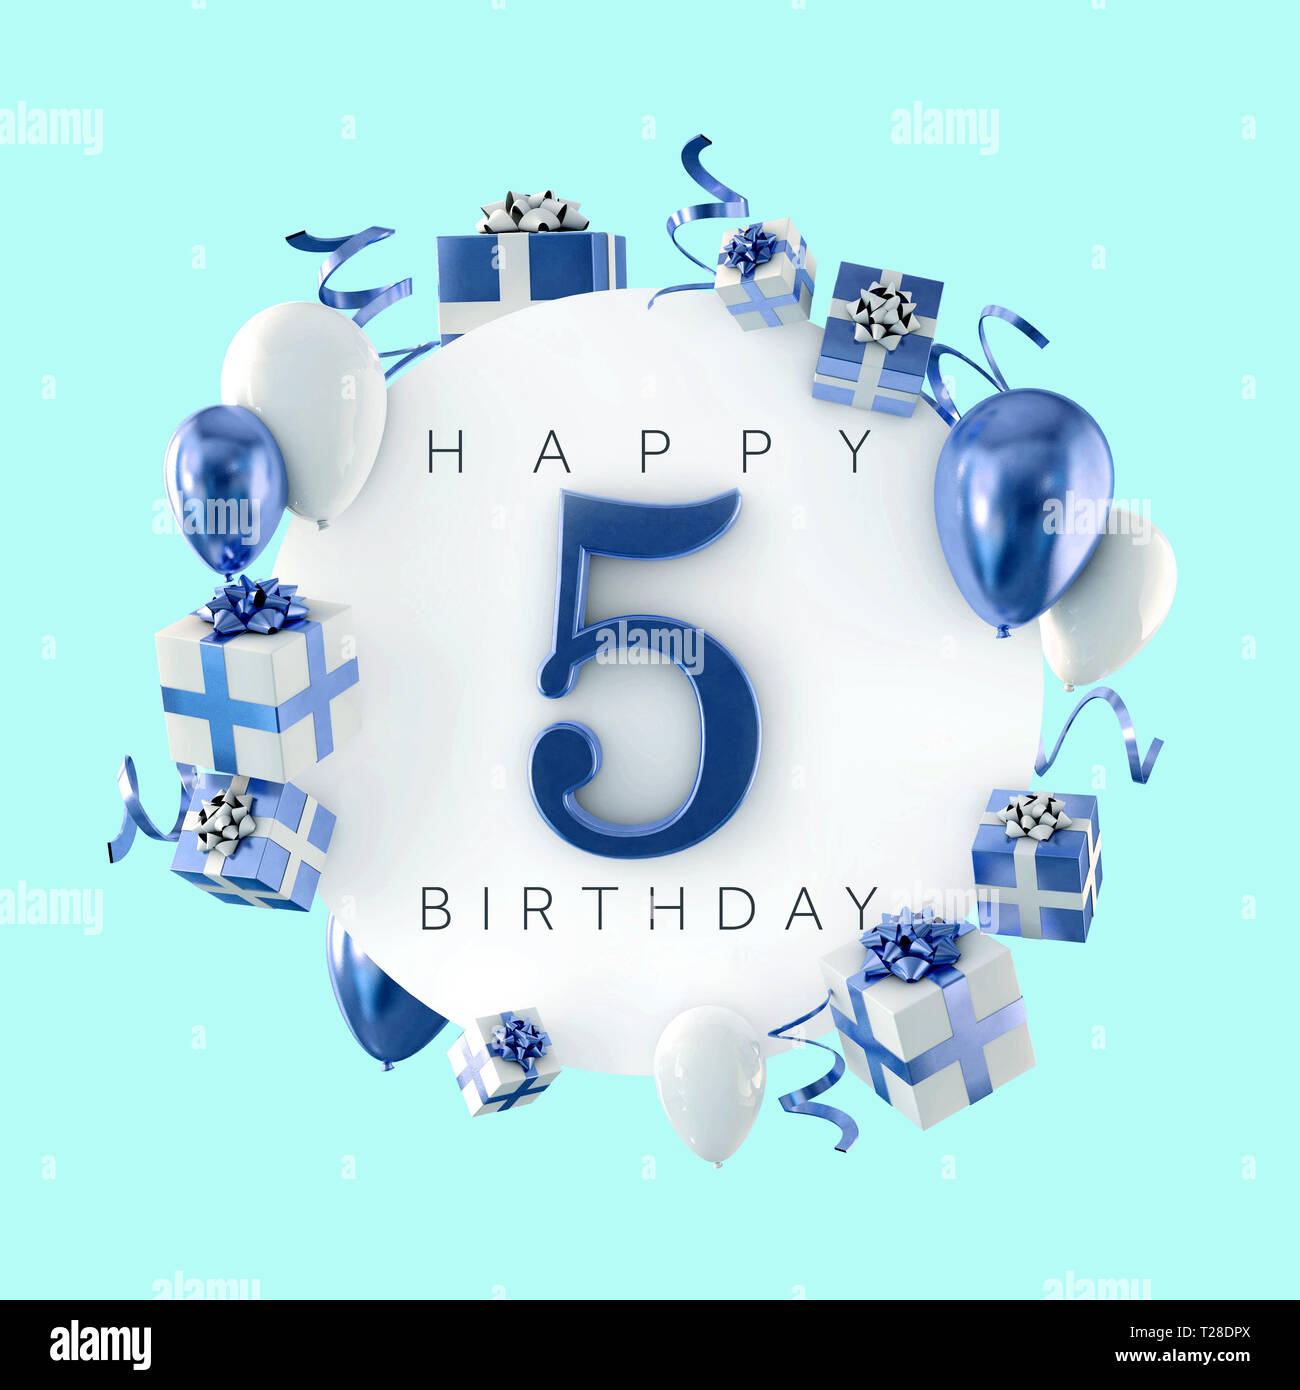 Happy 5th Birthday High Resolution Stock Photography And Images Alamy